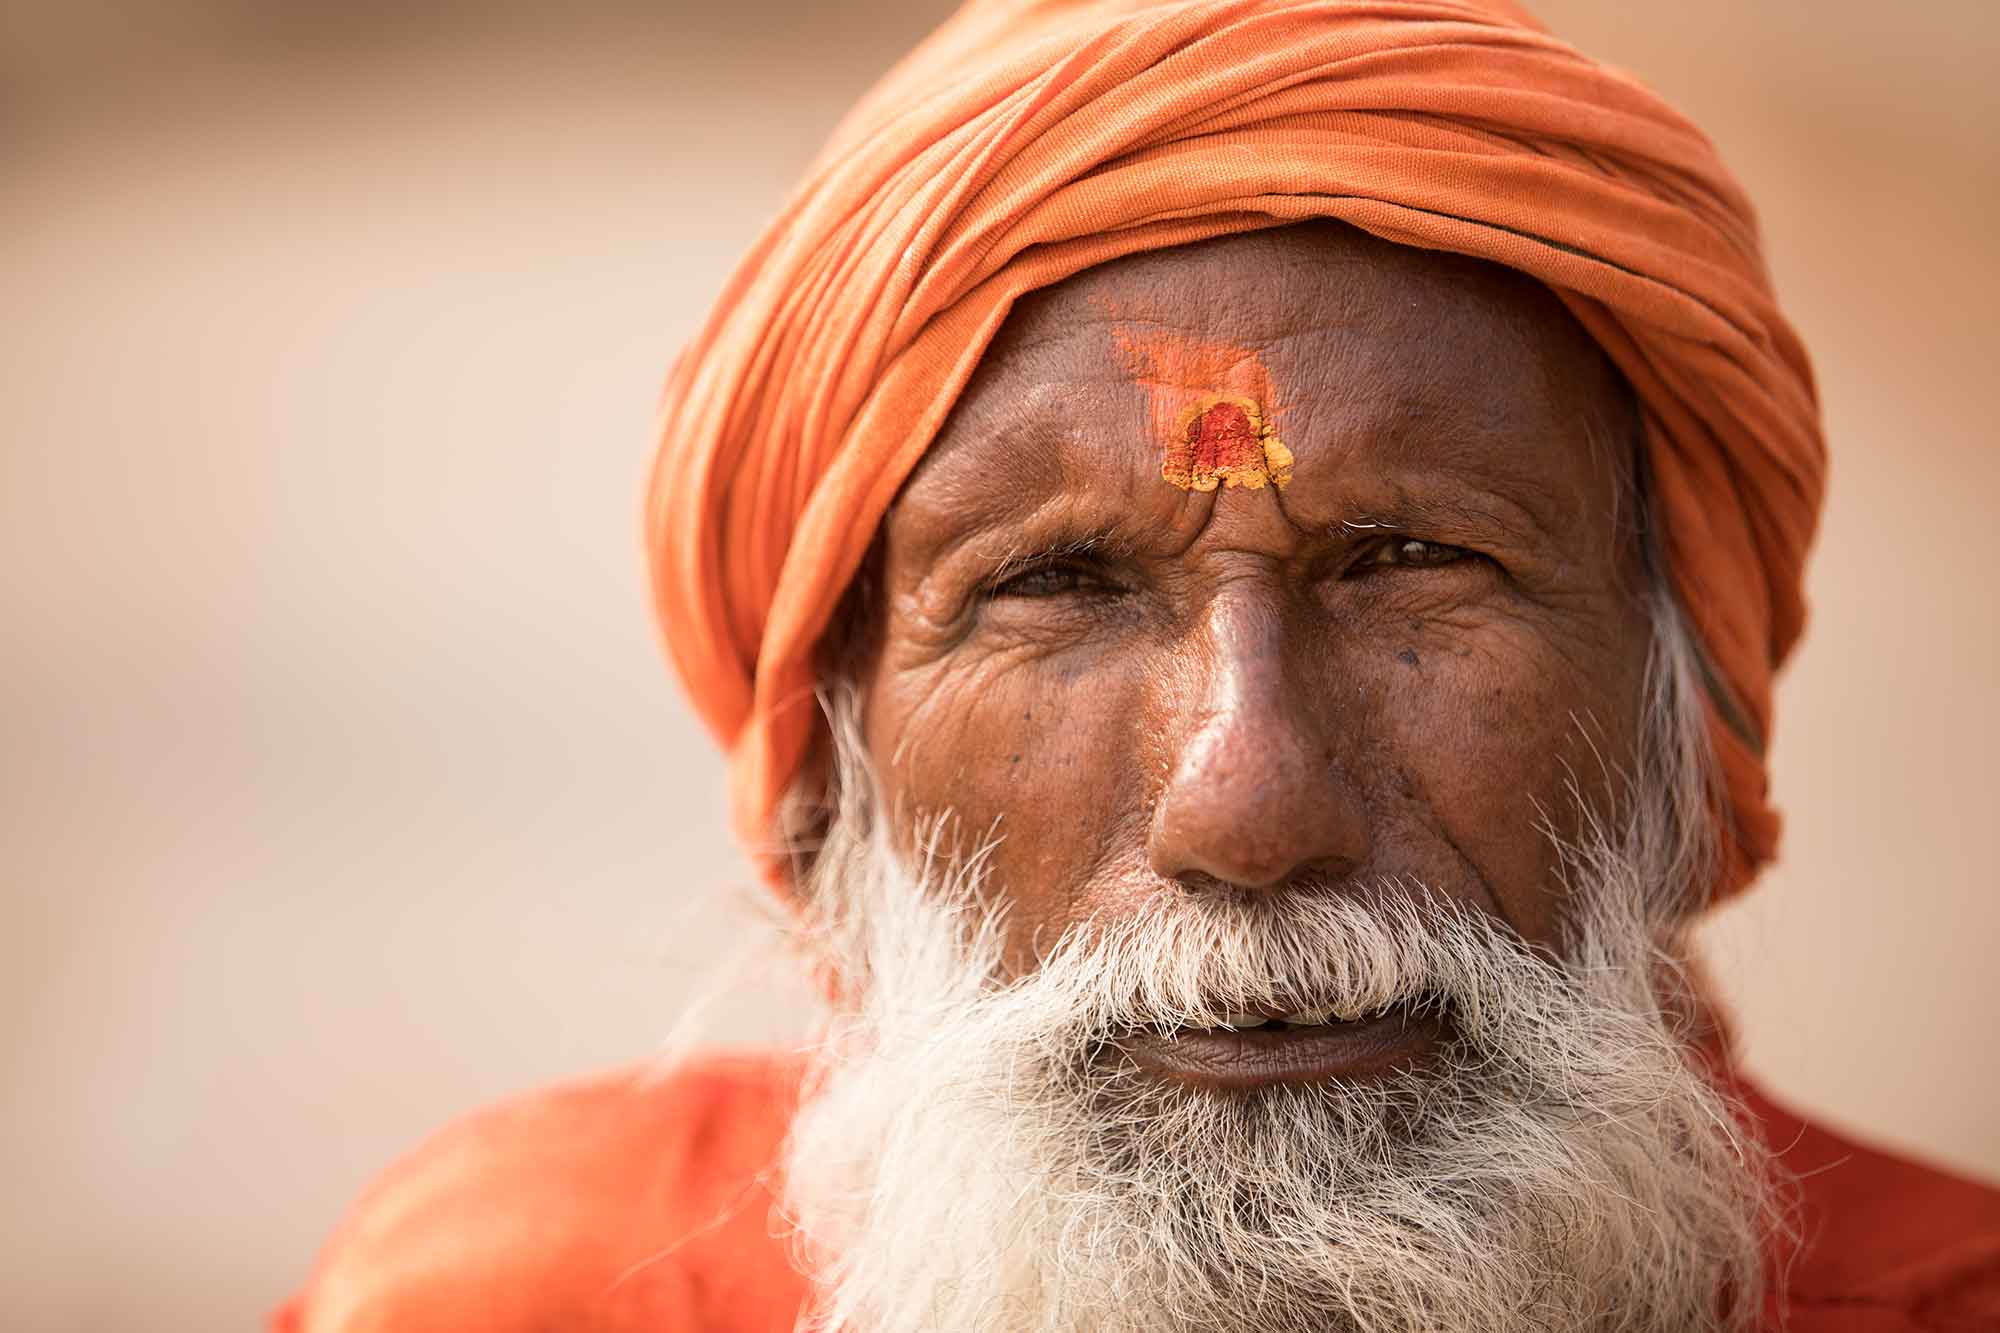 sadhu-portrait-varanasi-india